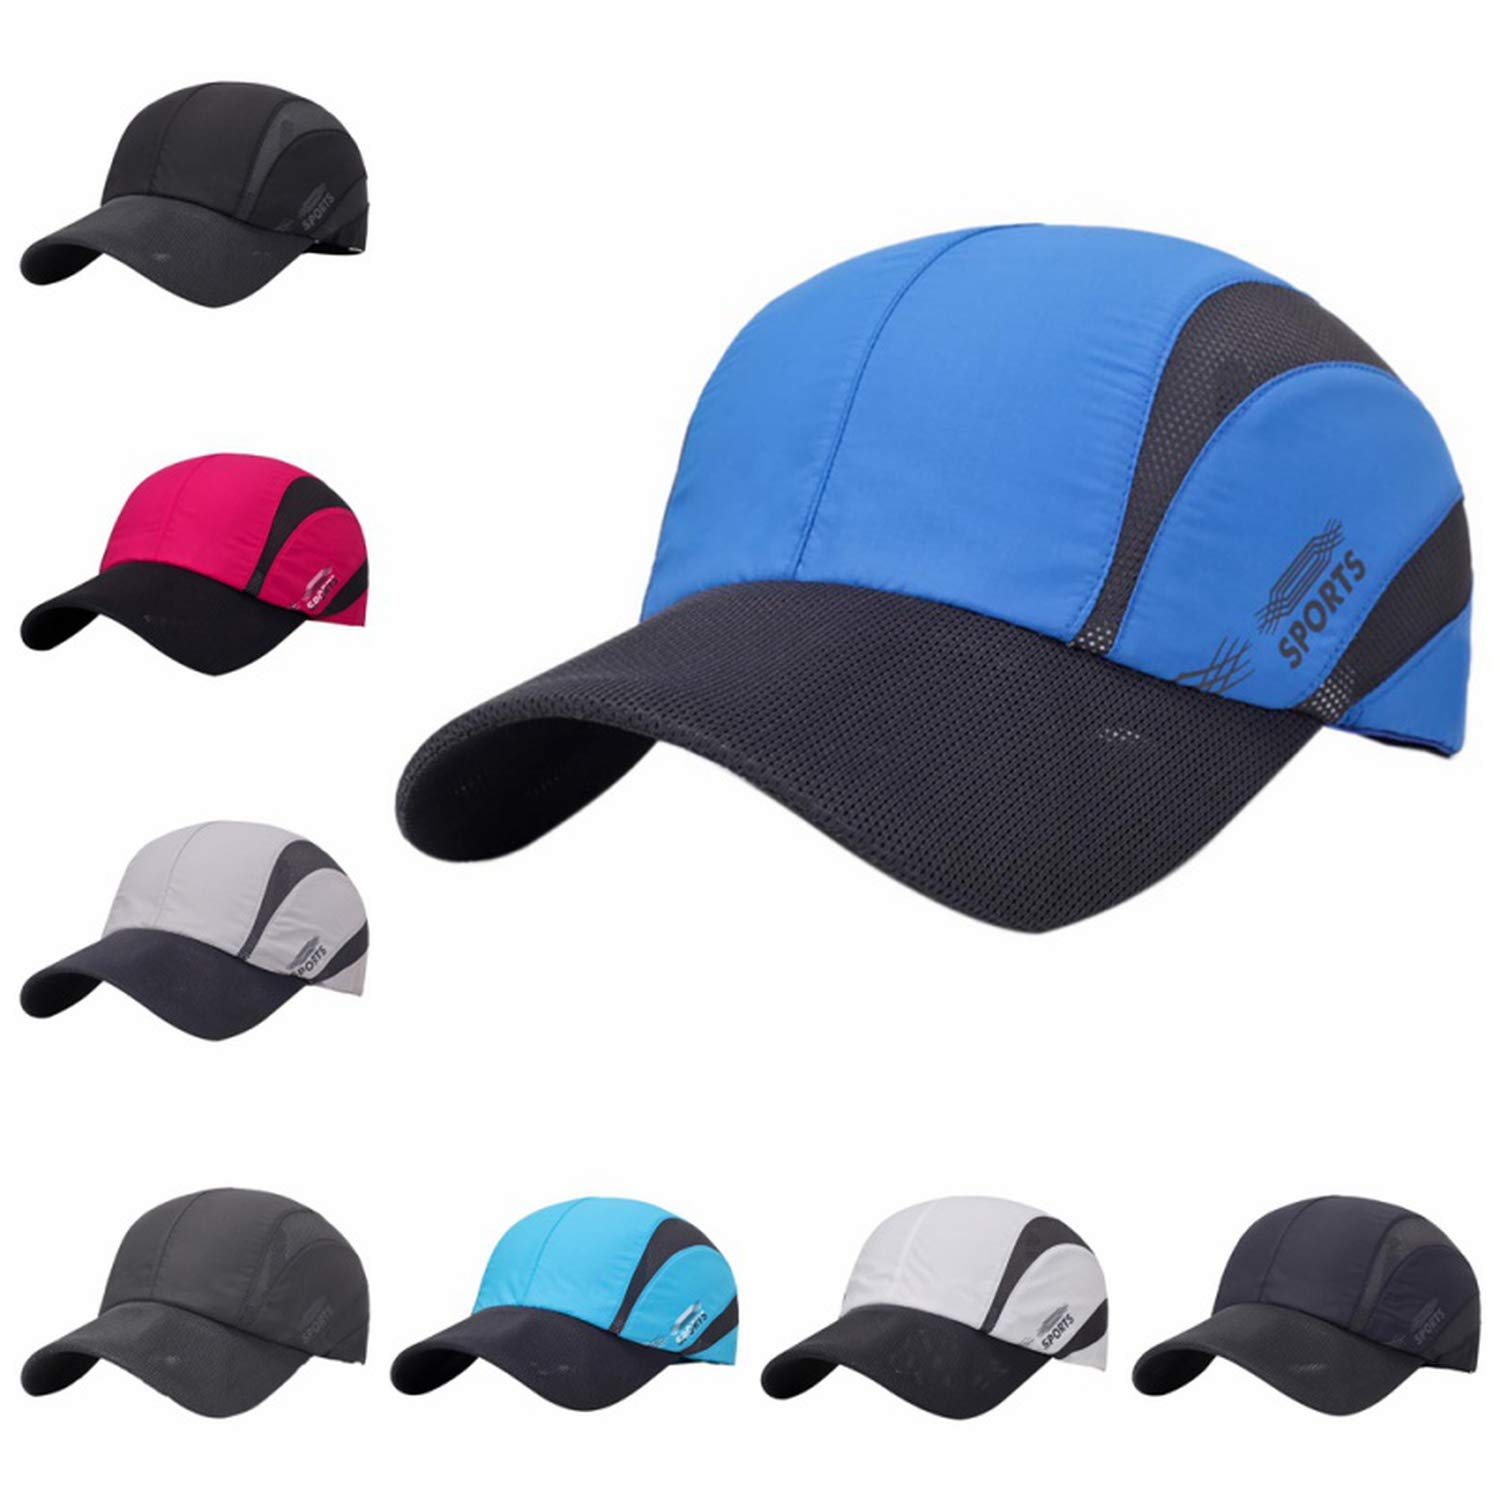 Feisette 2019 Summer Men Cap Quick Dry Mesh Baseball Hat Men Tourism Fishing Cap Bones Sport Climbing Black Grey Gorras